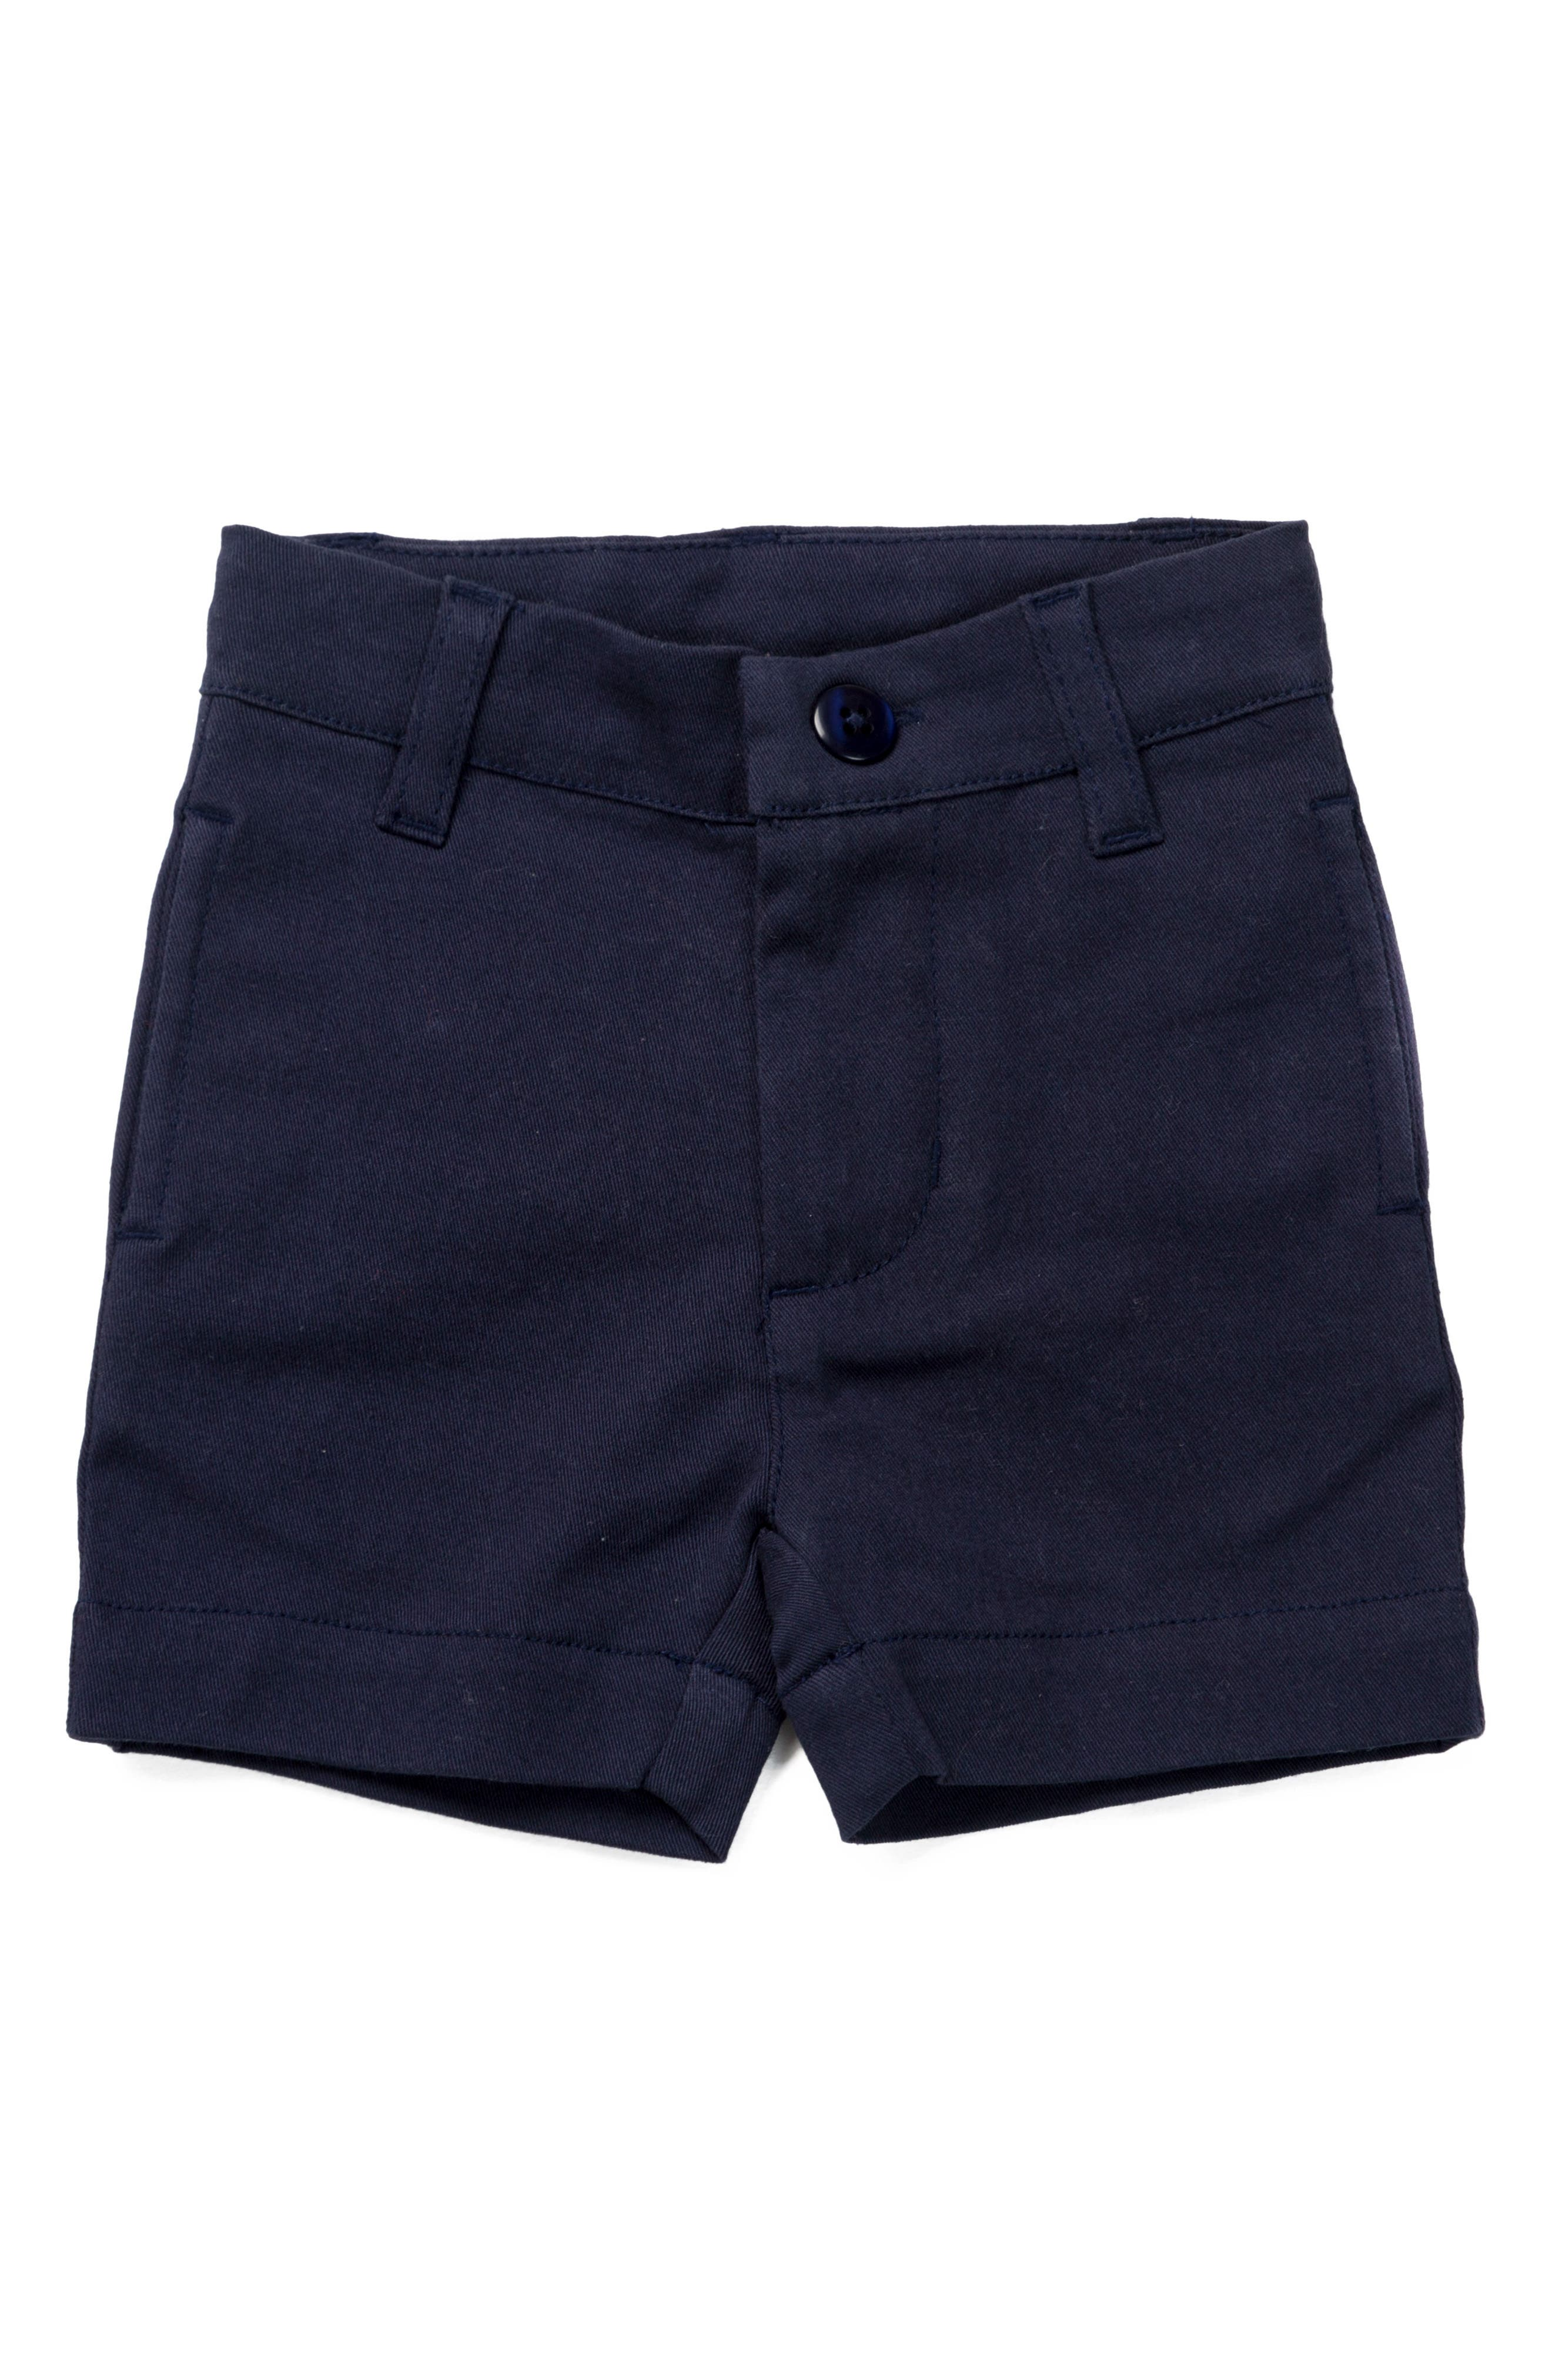 Main Image - Monica + Andy Old Sport Shorts (Toddler Boys)